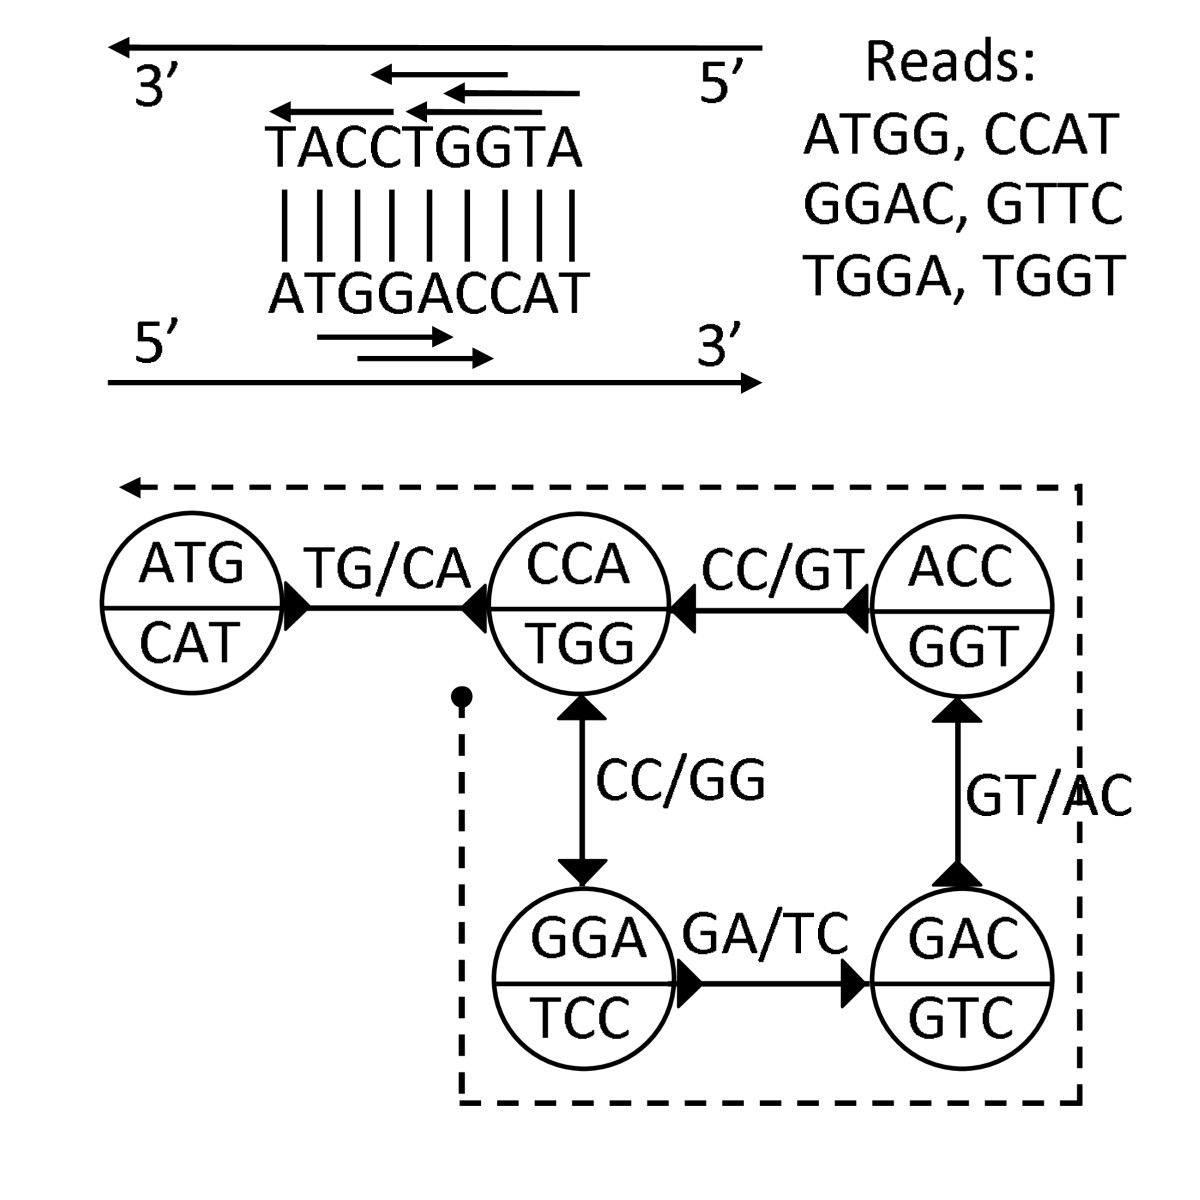 http://static-content.springer.com/image/art%3A10.1186%2F1471-2105-11-560/MediaObjects/12859_2010_Article_4143_Fig2_HTML.jpg